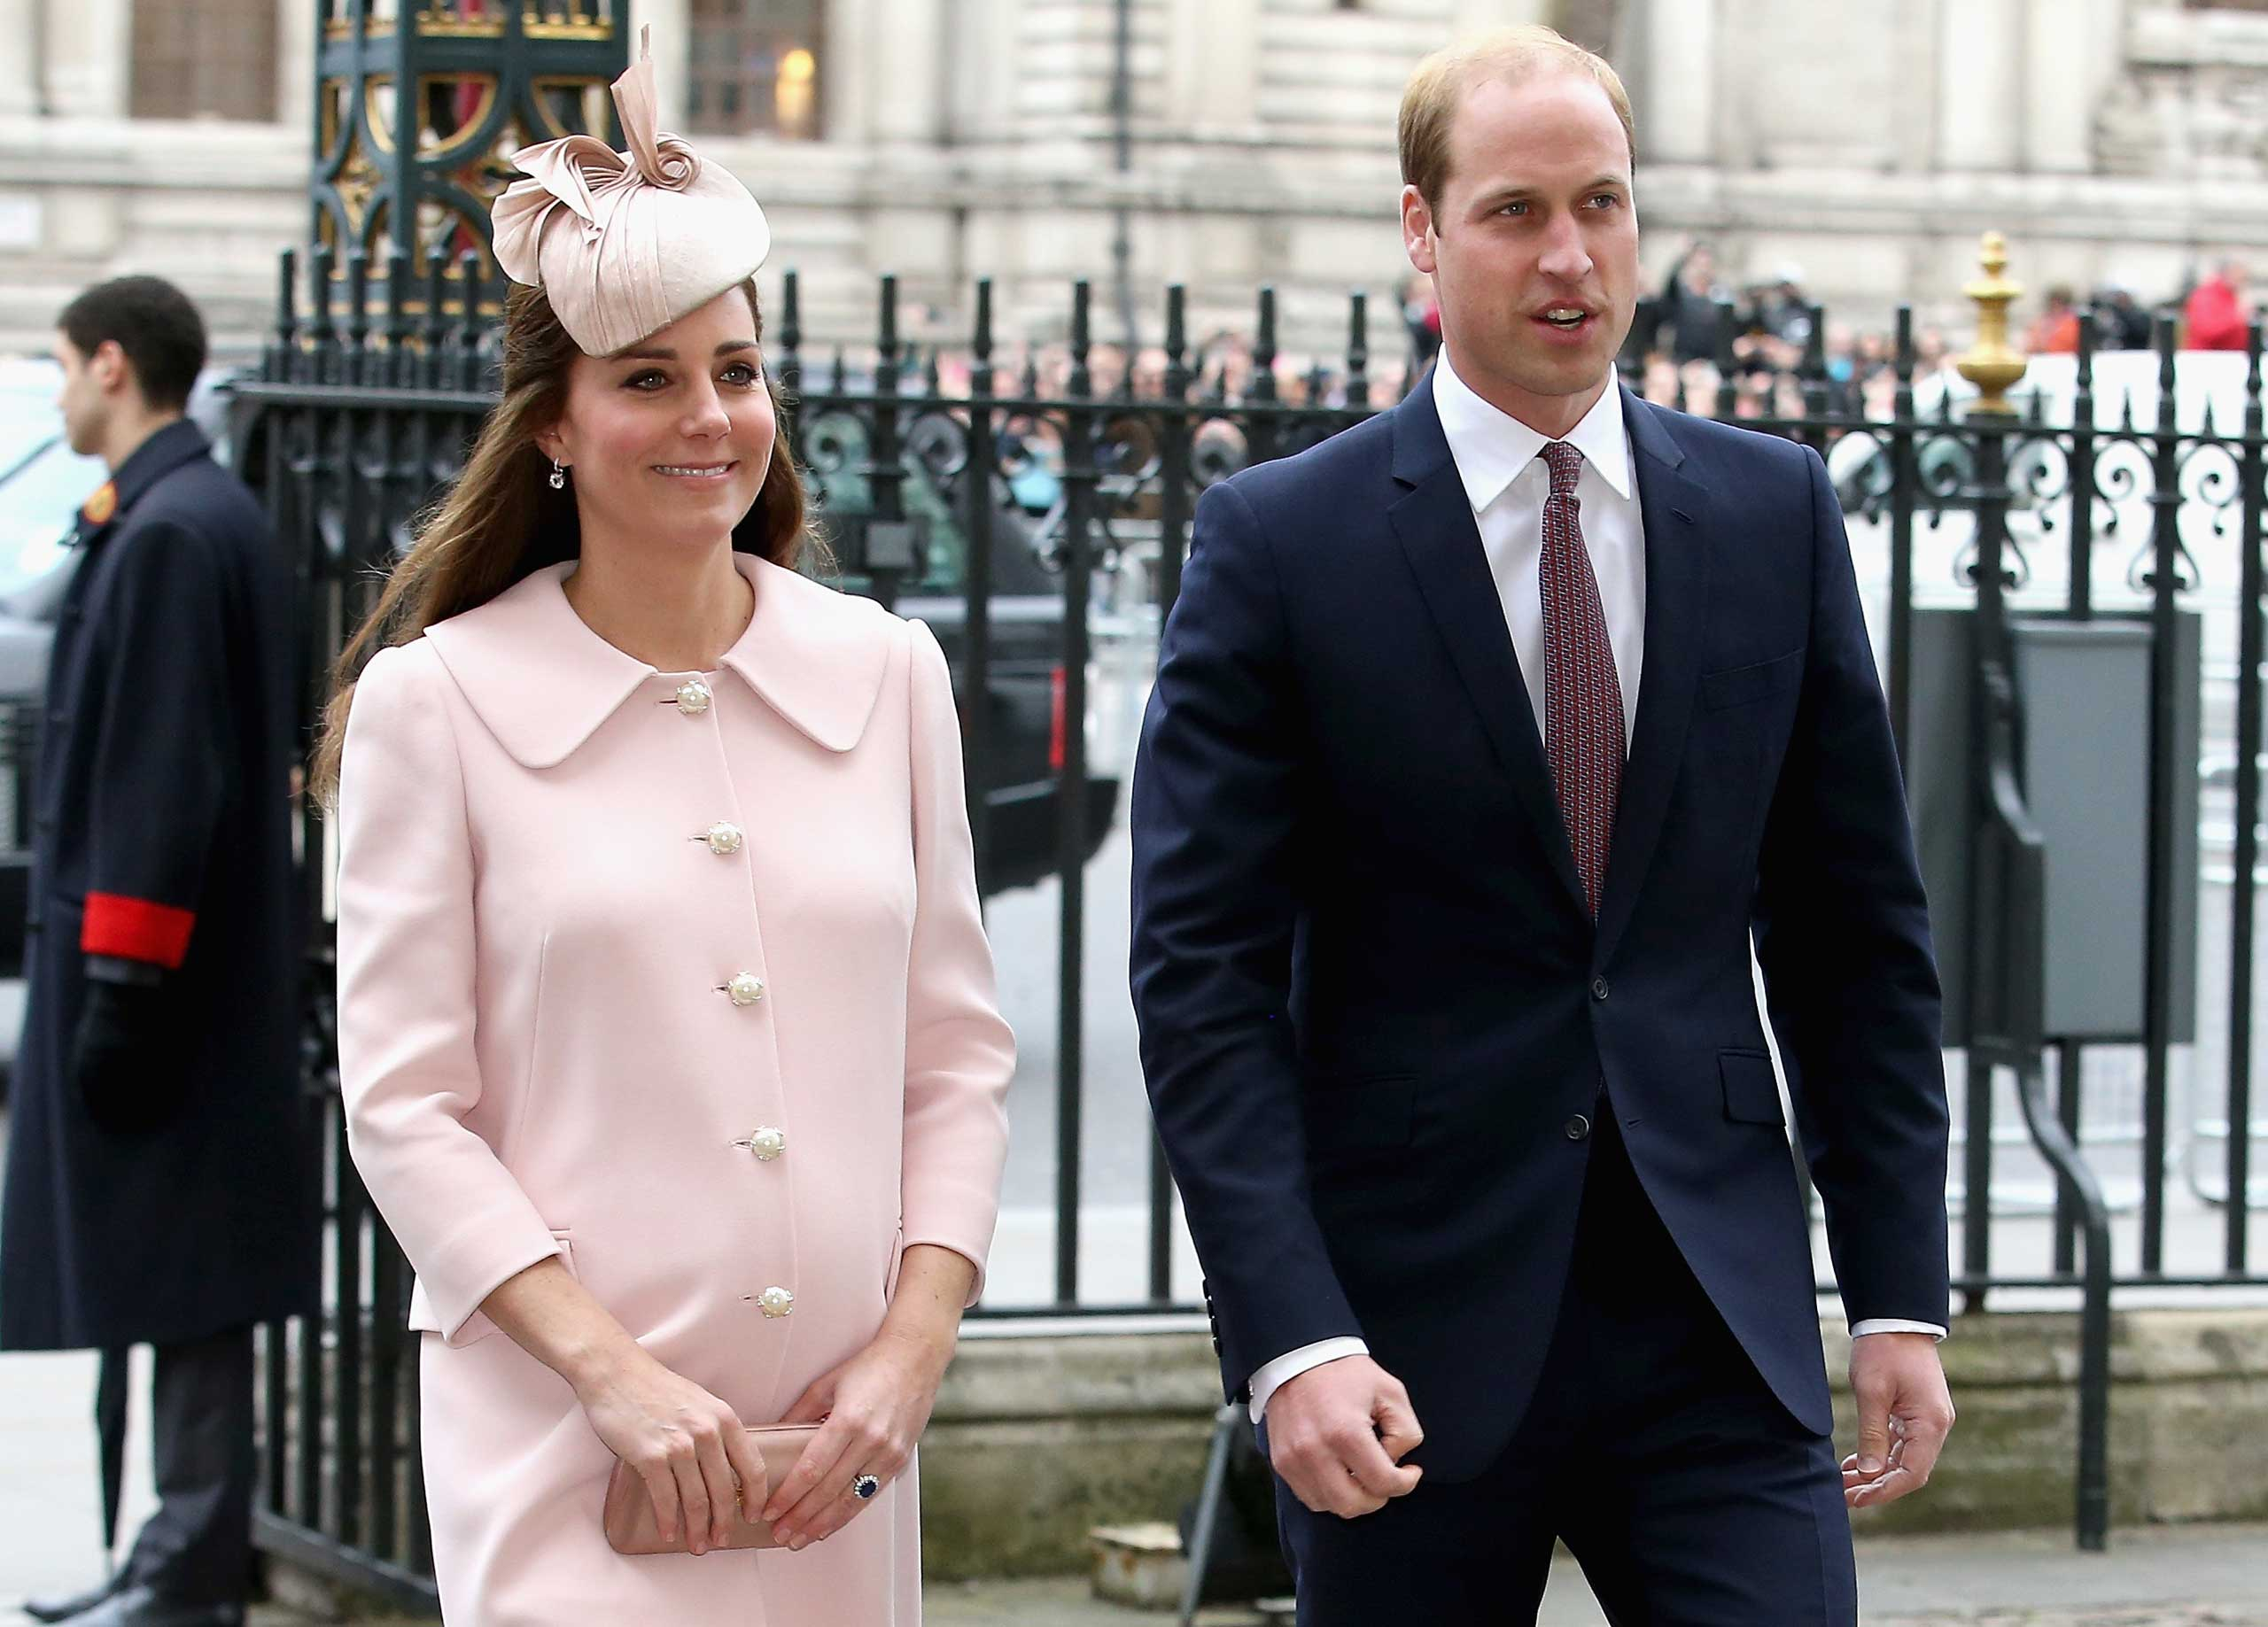 Catherine, Duchess of Cambridge and Prince William, Duke of Cambridge attend the Observance for Commonwealth Day Service At Westminster Abbey in London on March 9, 2015.